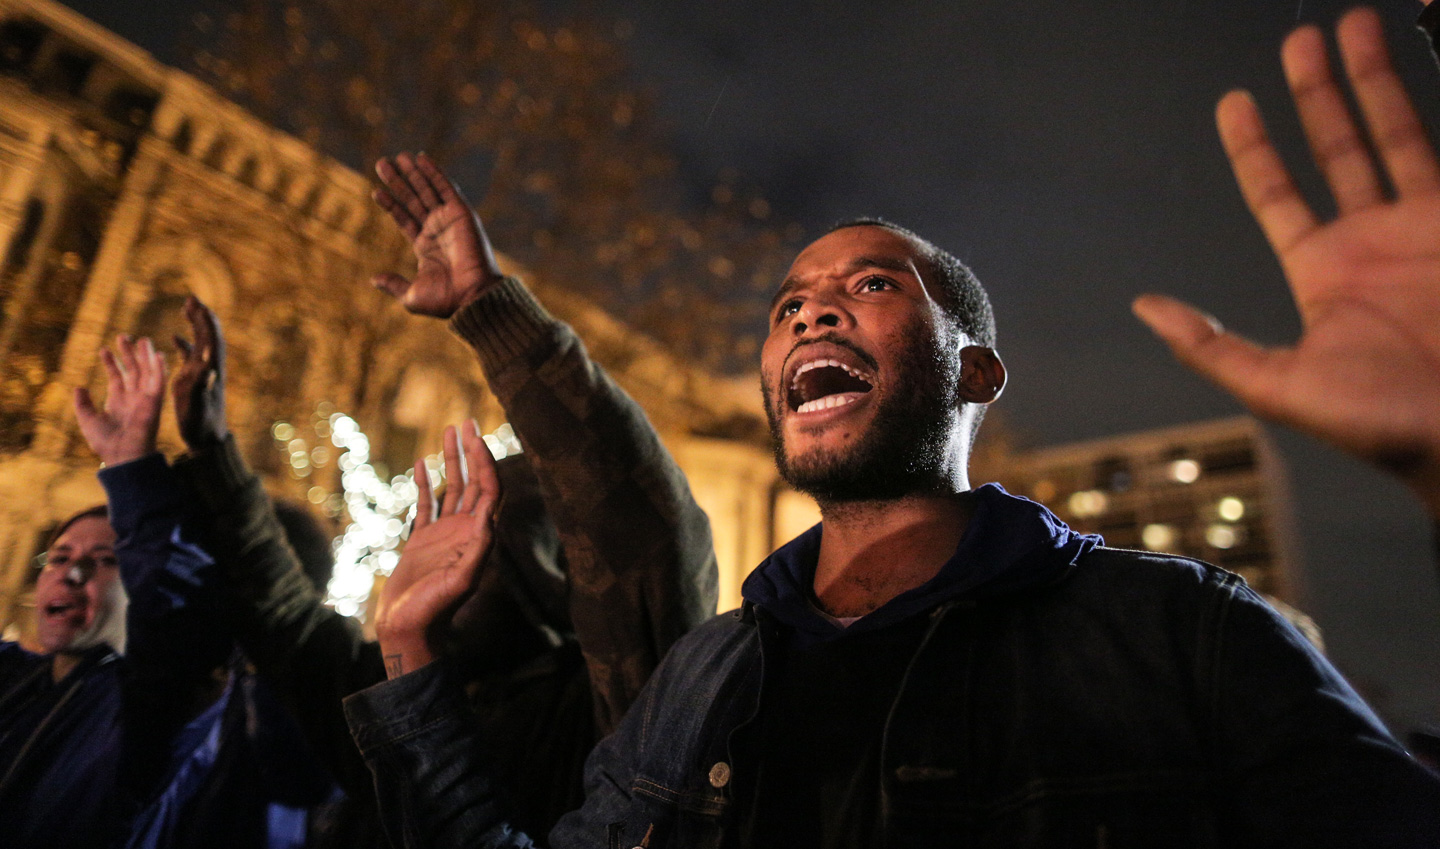 Protesters demonstrate following a New York grand jury's decision not to indict a police officer in the chokehold death of Eric Garner on December 3, 2014 in Oakland.